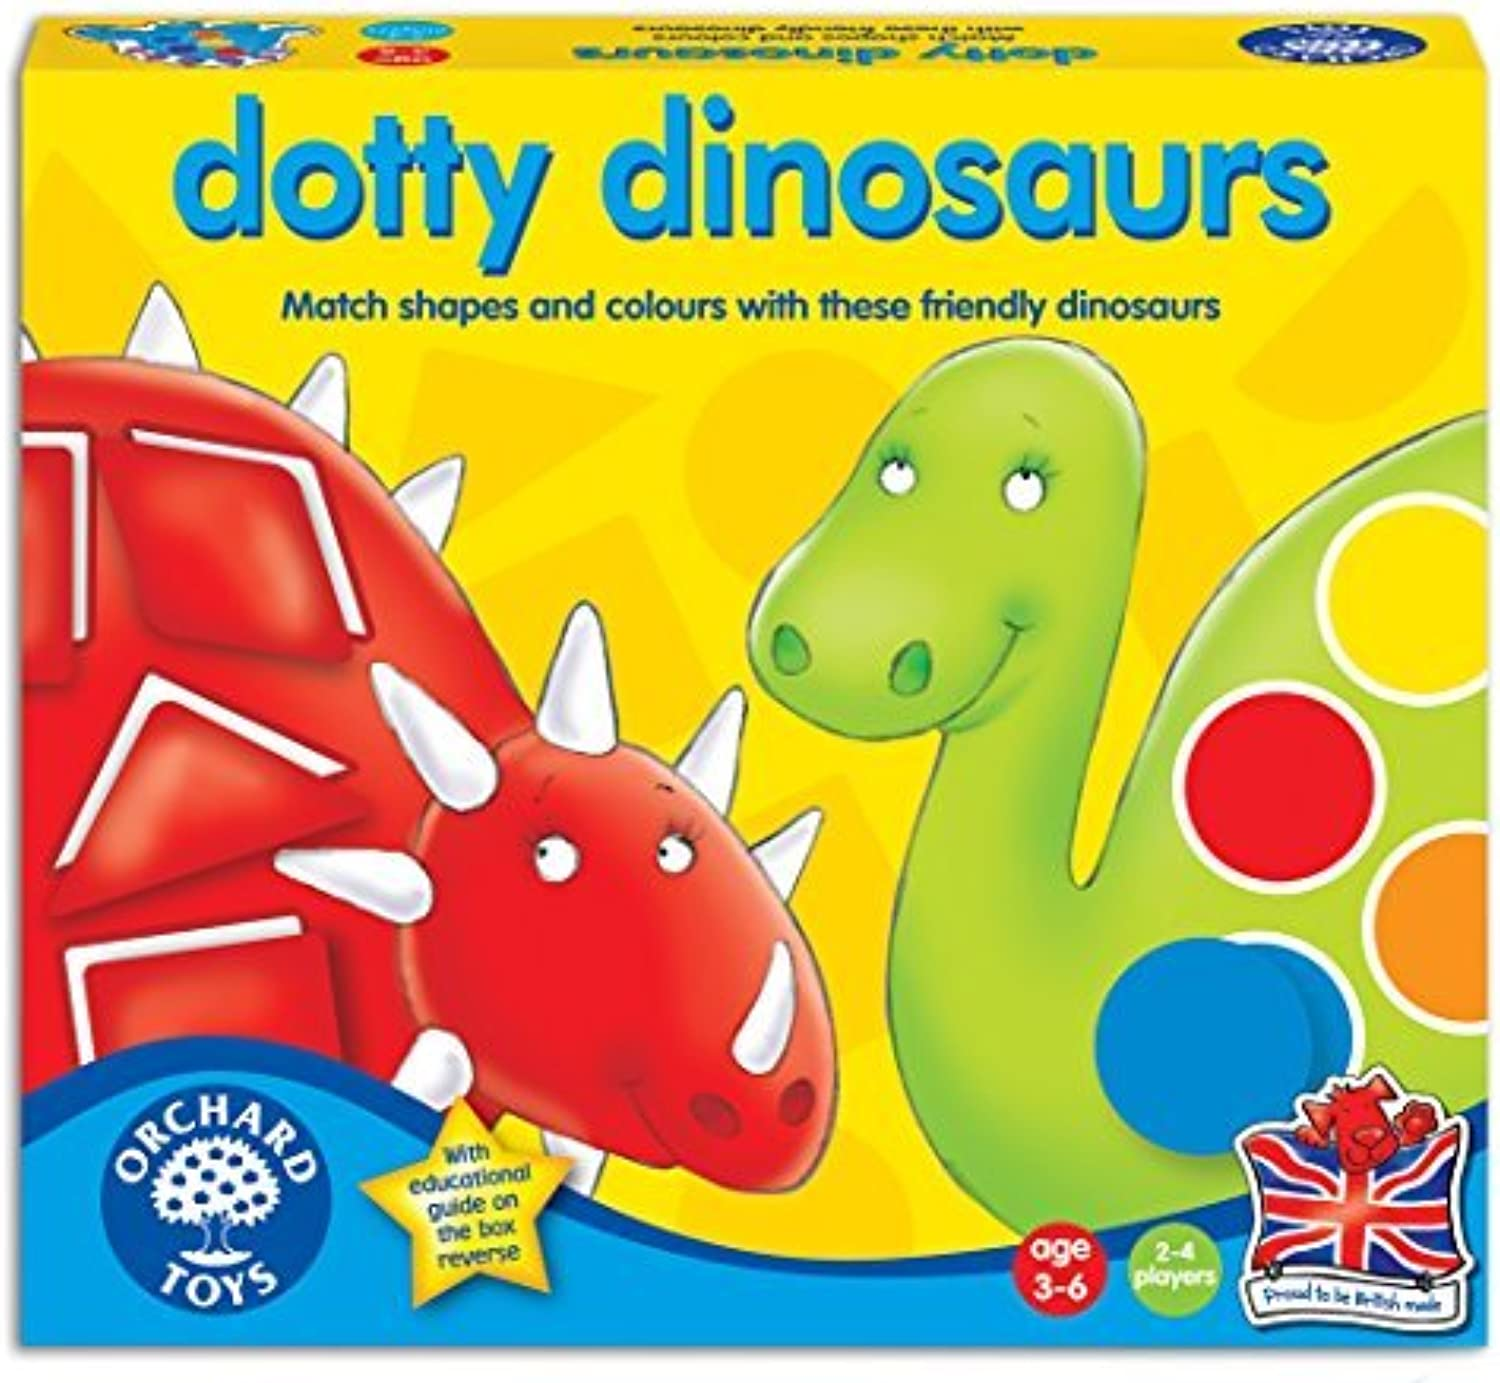 Orchard Toys Dotty Dinosaurs by Orchard Toys